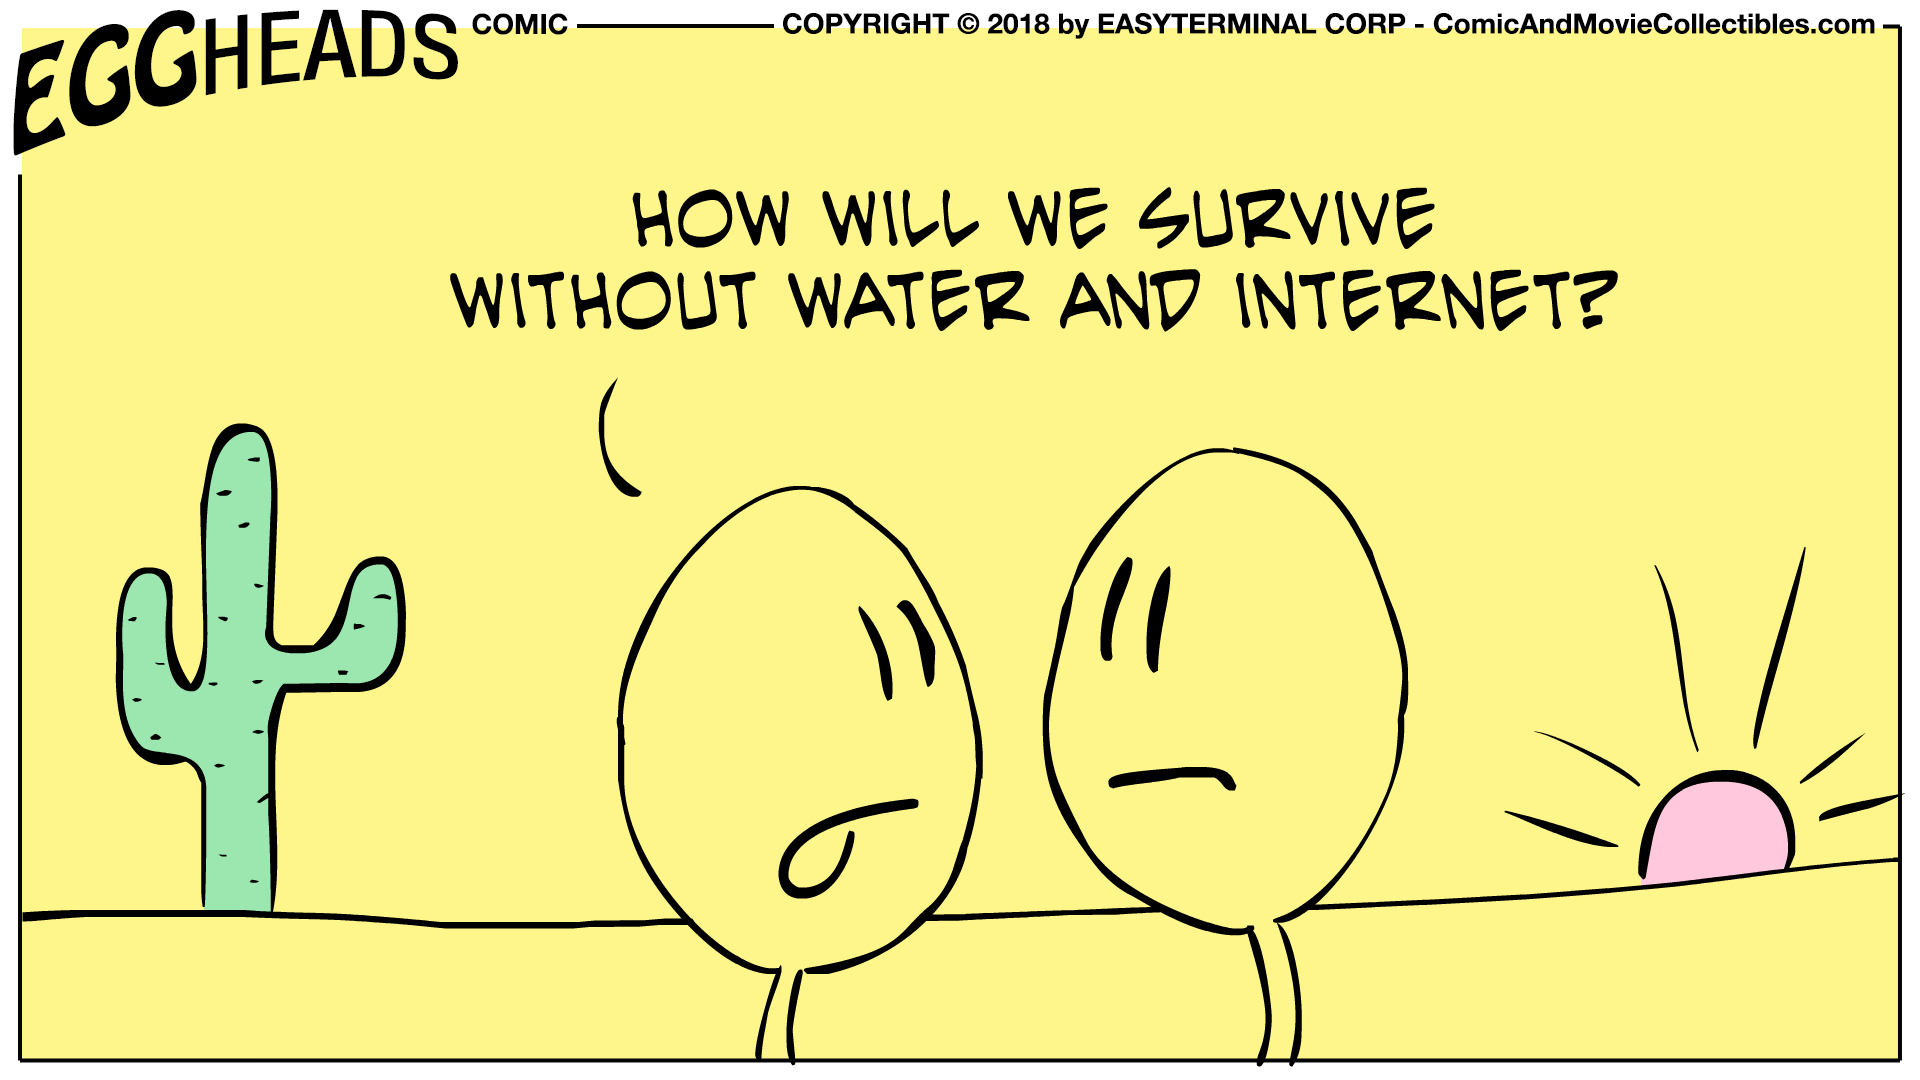 Webcomic Eggheads Comic Strip 015 Survive